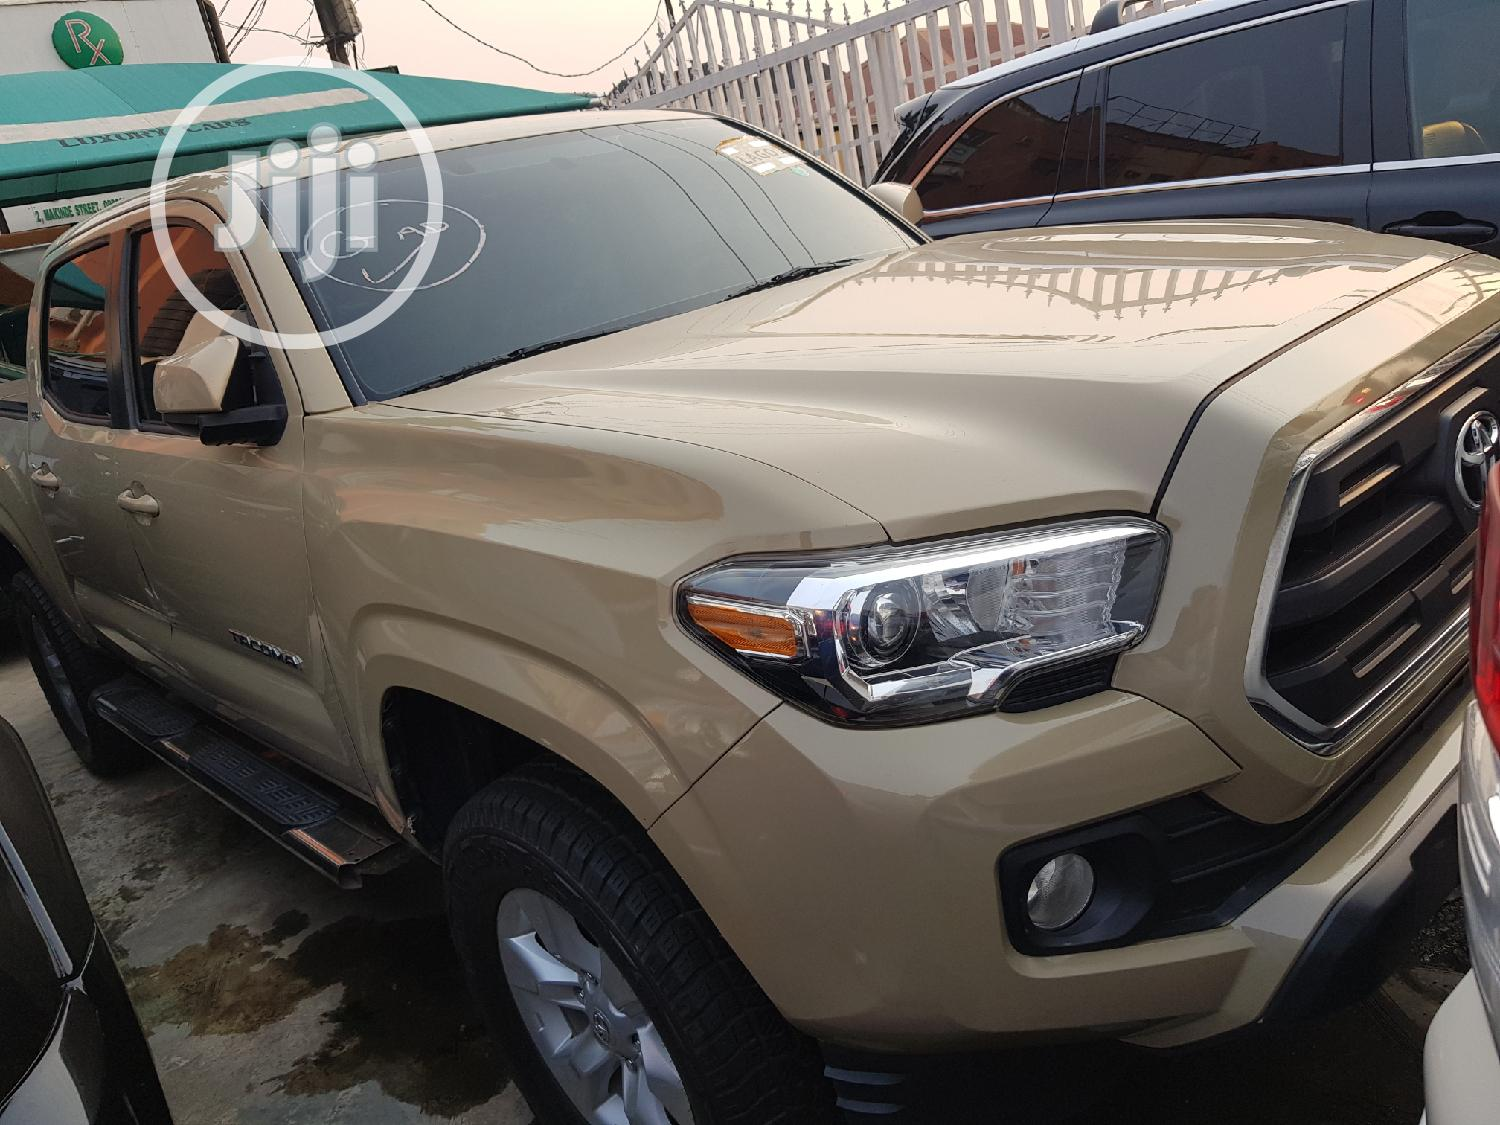 Toyota Tacoma 2016 4dr Double Cab Beige